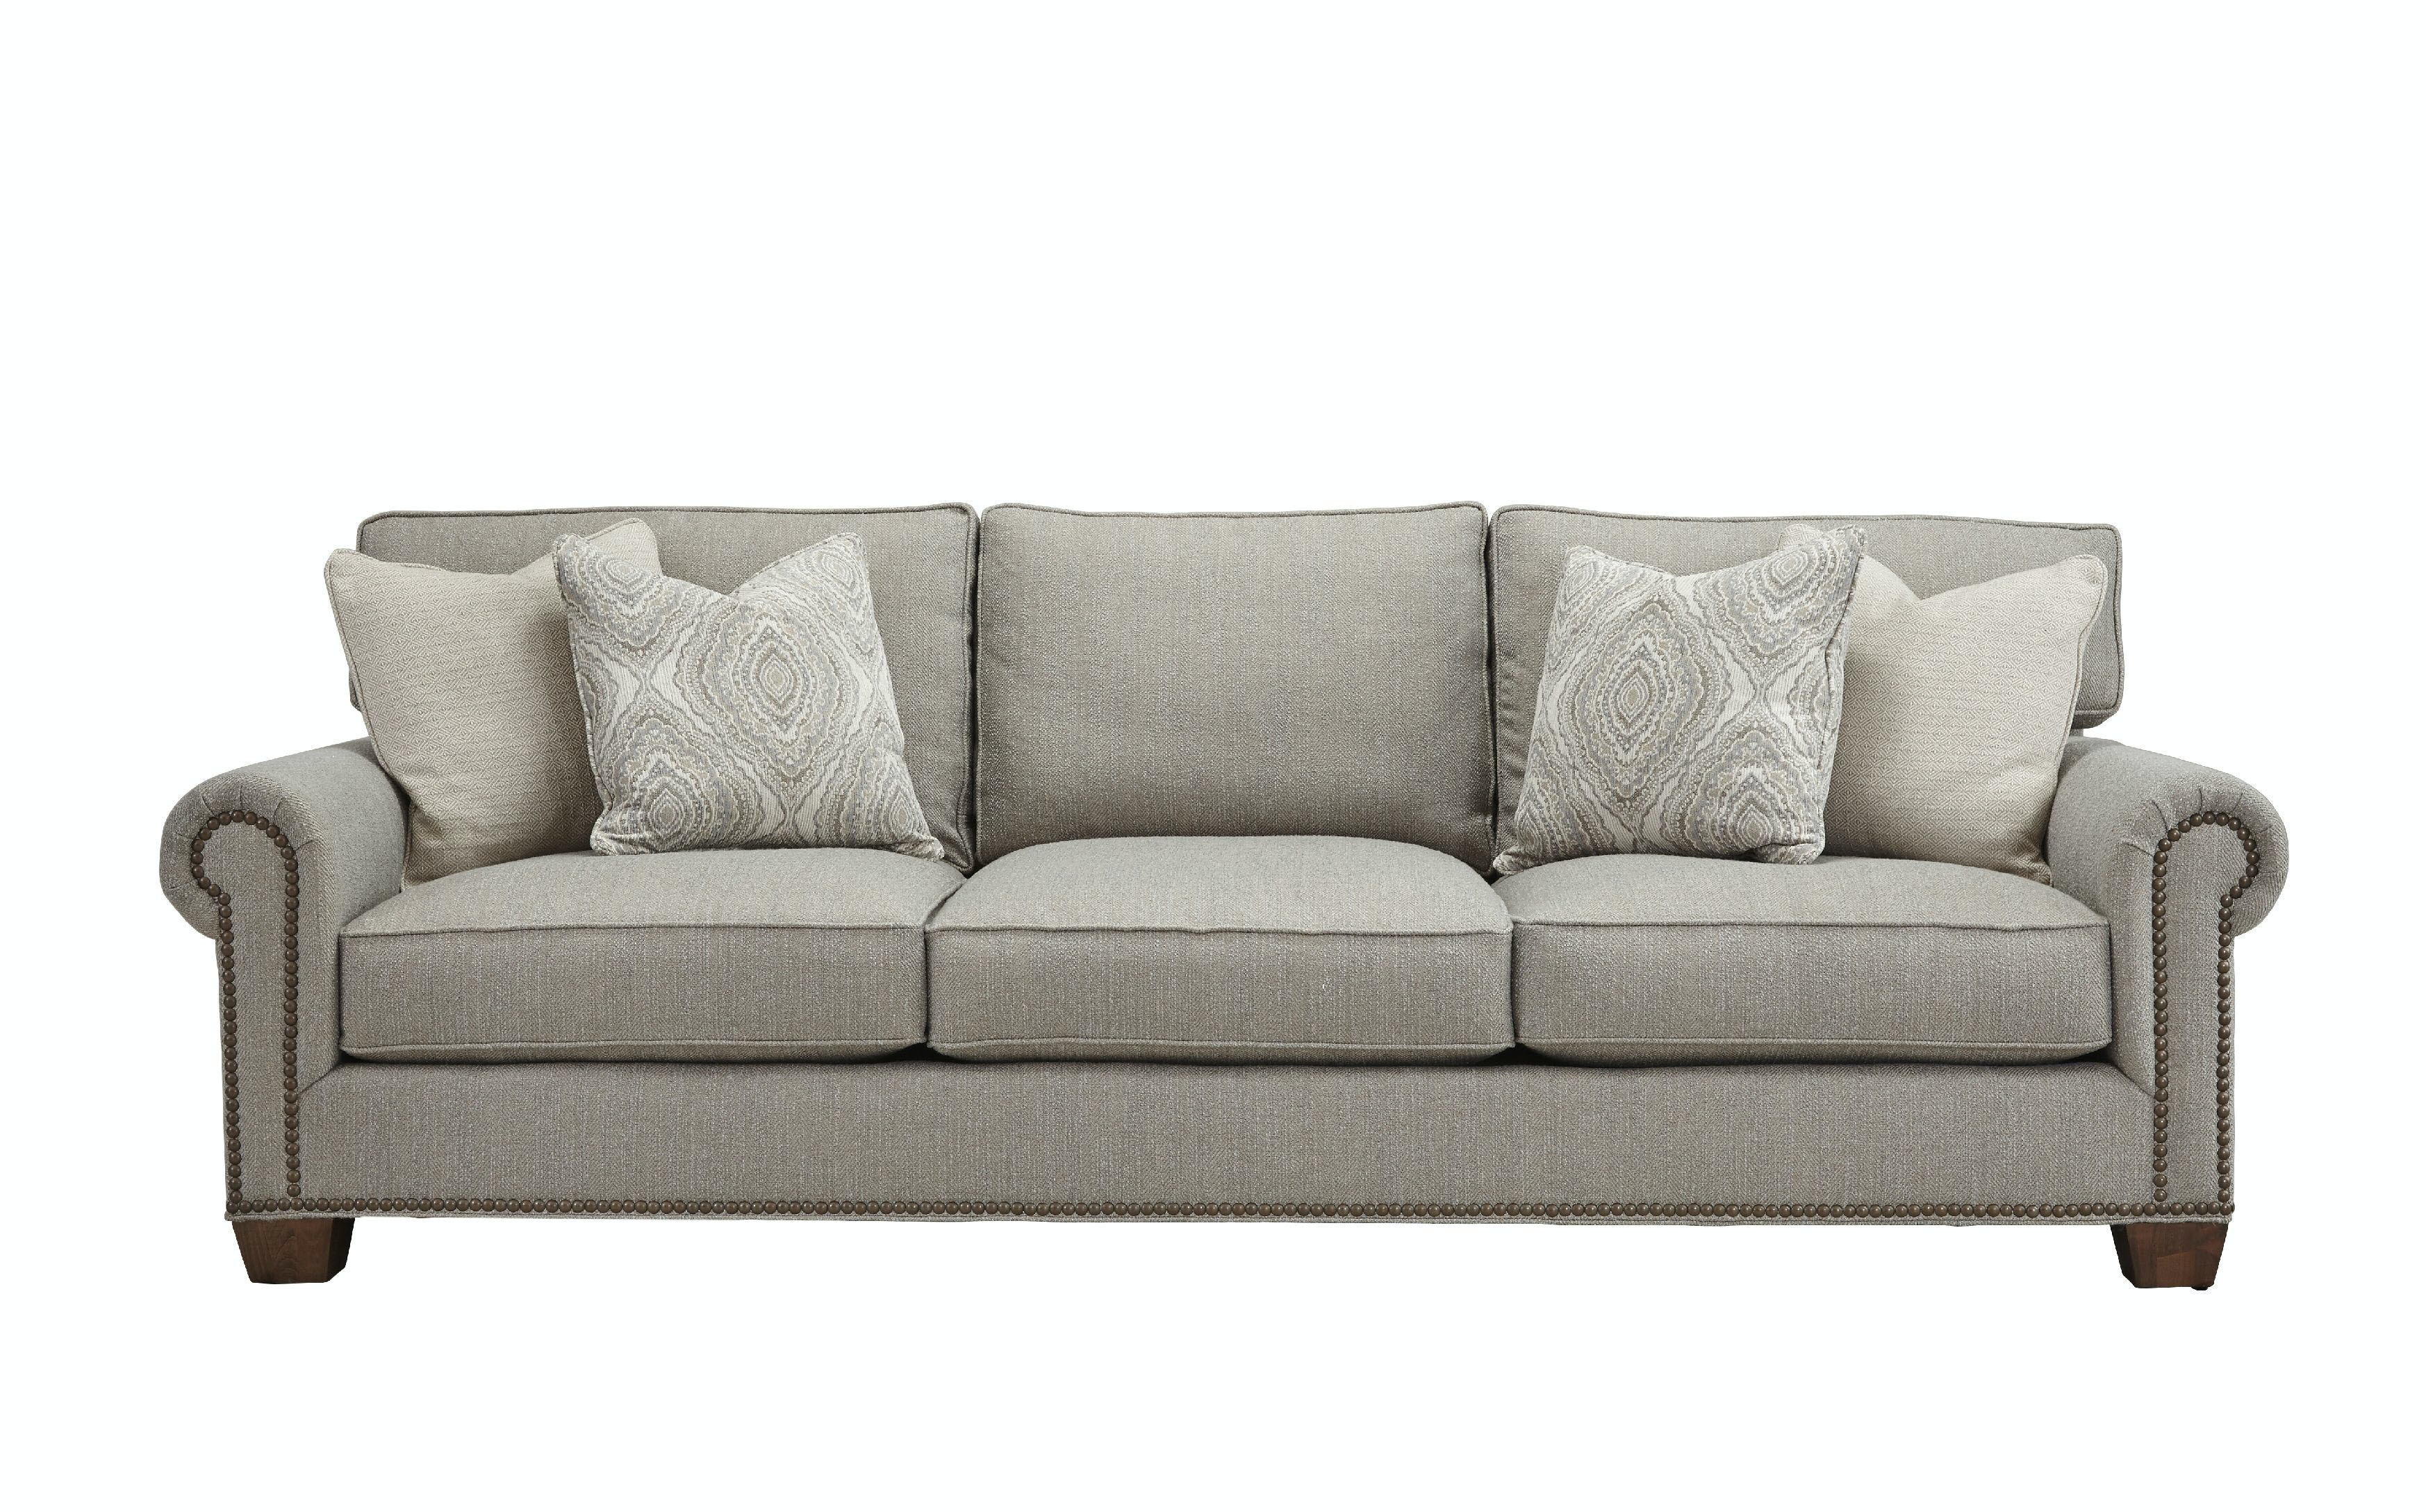 Southern Furniture Burt Sofa 8ft 21361 8 Ft Couch C74